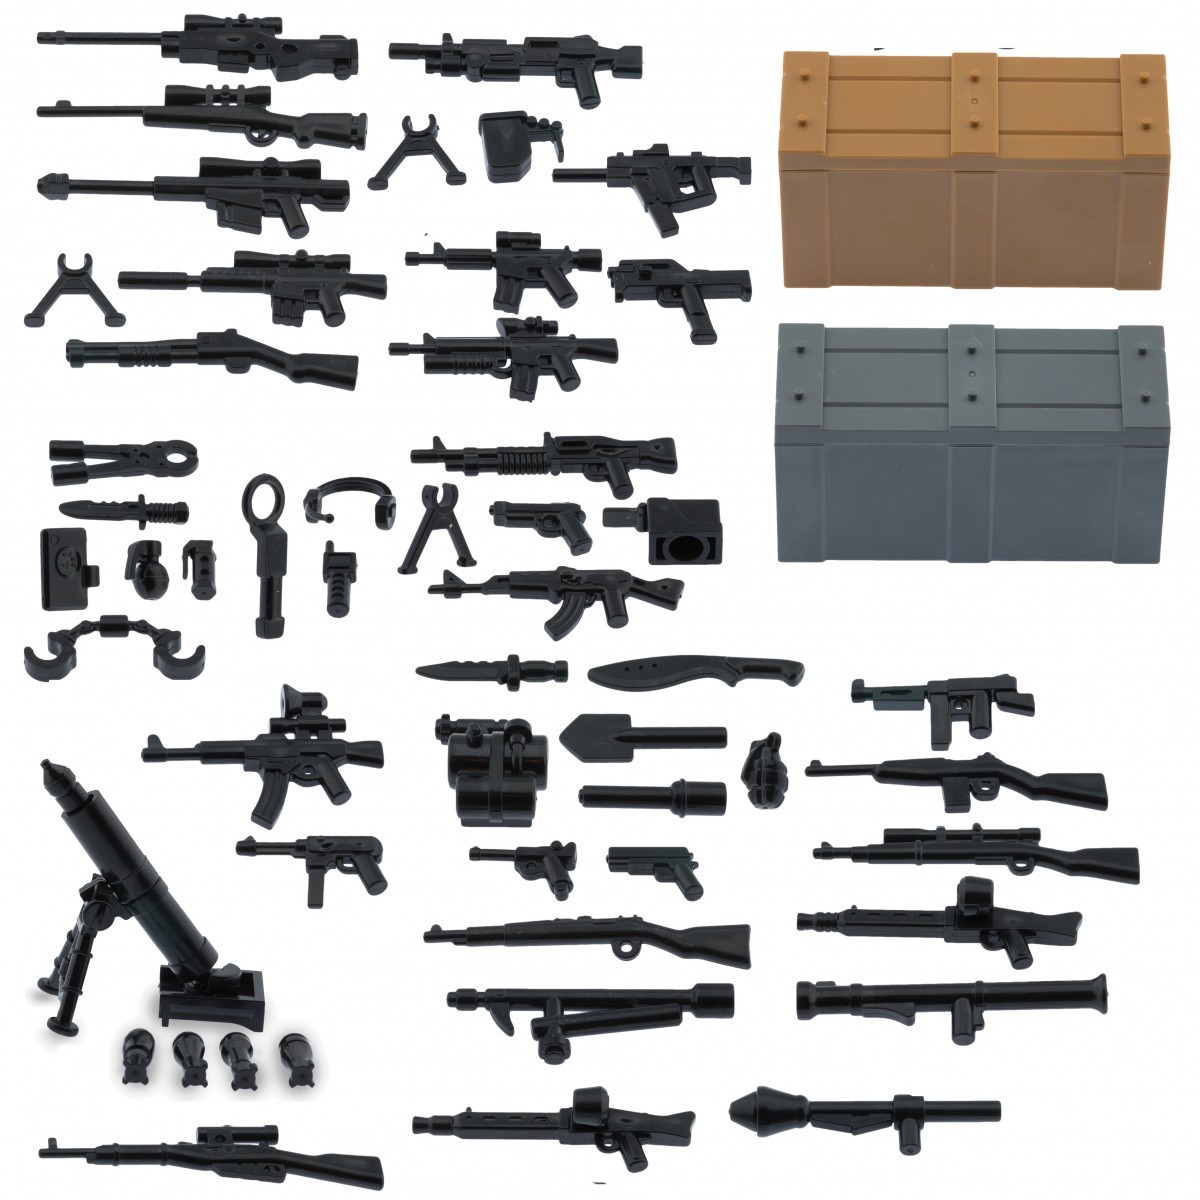 guns weapons pack for lego minifigures minifig accessories set a and b weapons pack with crates